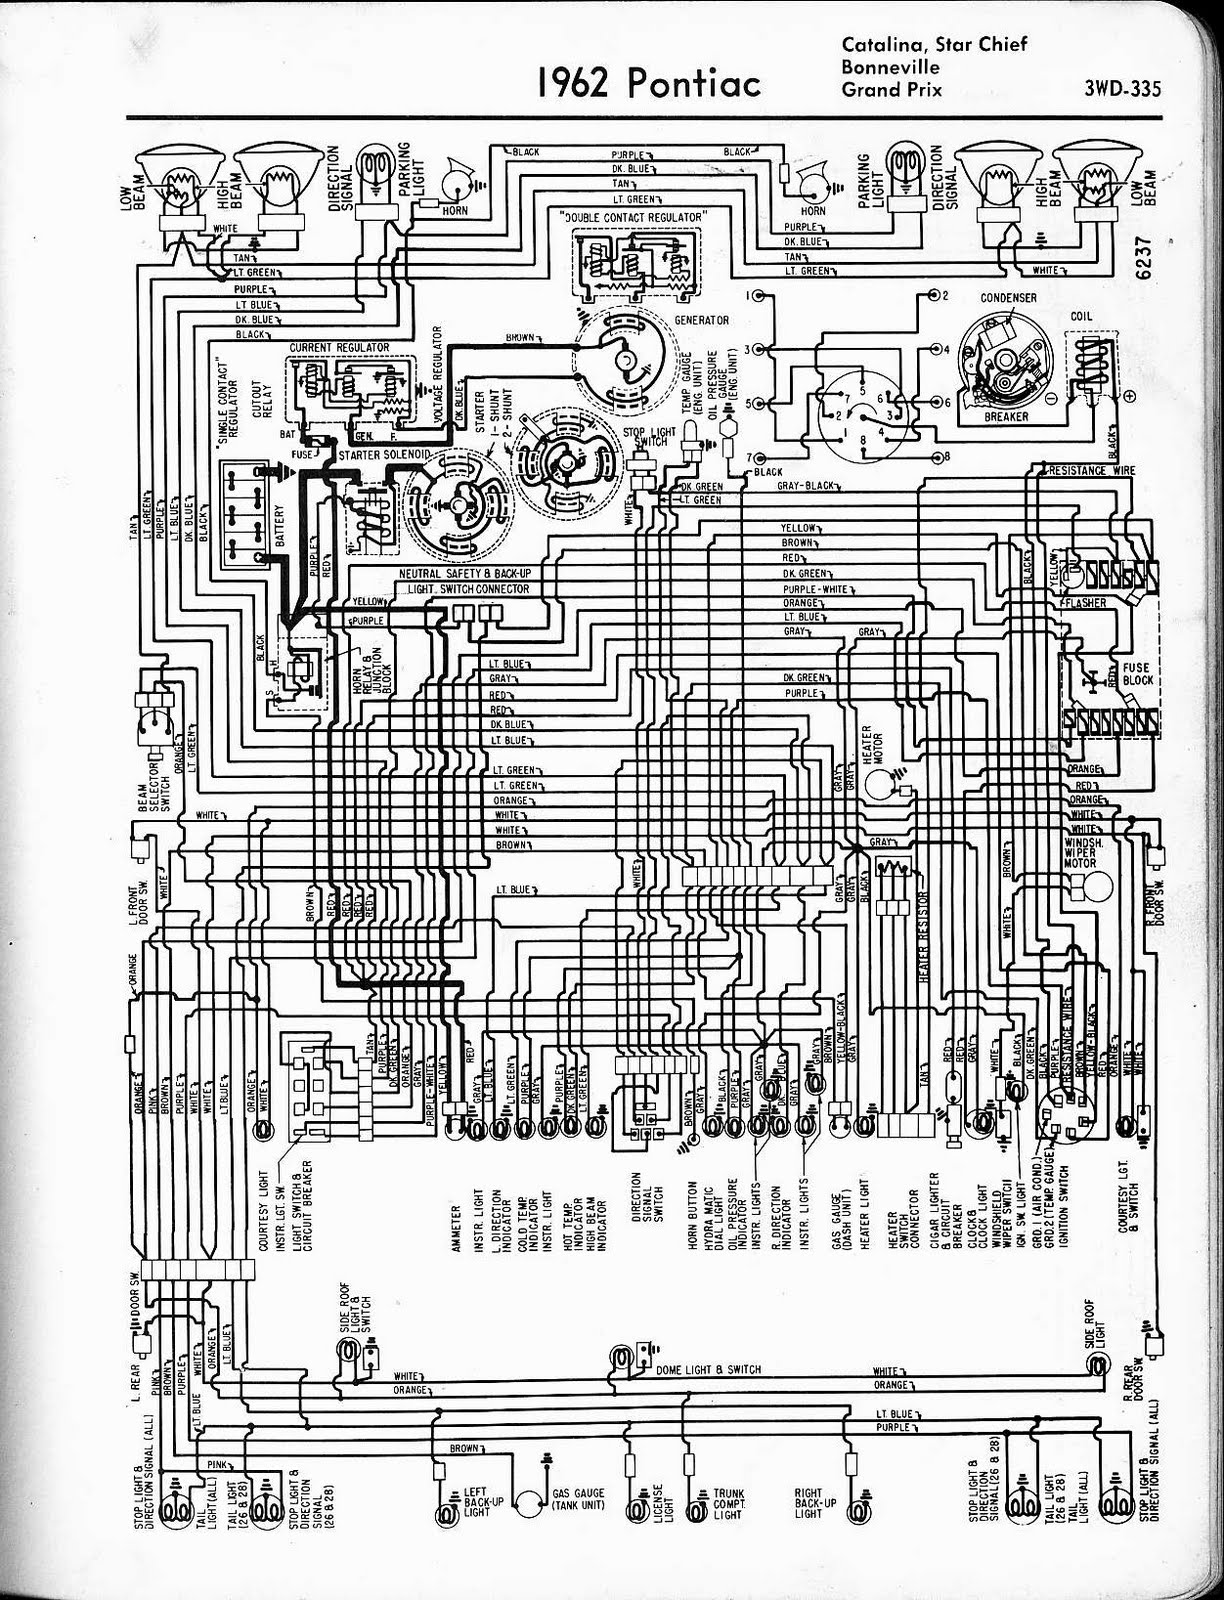 1962+Pontiac+Catalina%252C+Star+Chief%252C+Bonneville%252C+Grand+Prix pontiac grand prix wiring diagram 2003 pontiac grand prix wiring diagram at bakdesigns.co